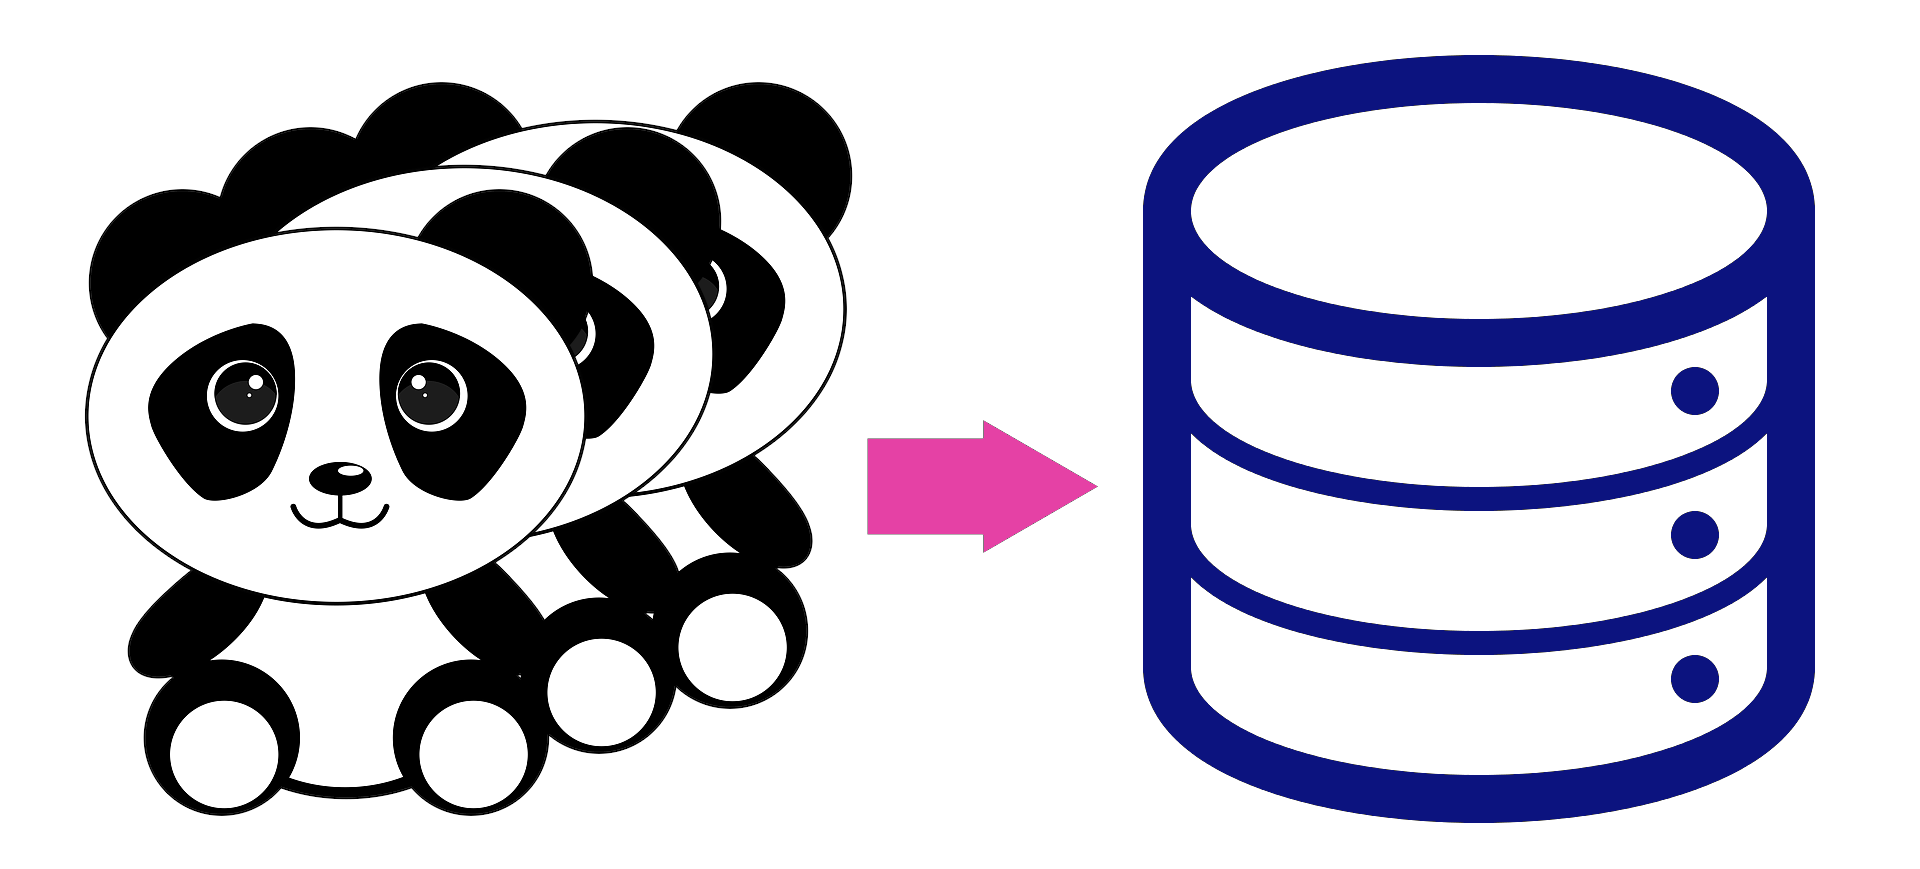 image of pandas and arrow pointing to database symbol